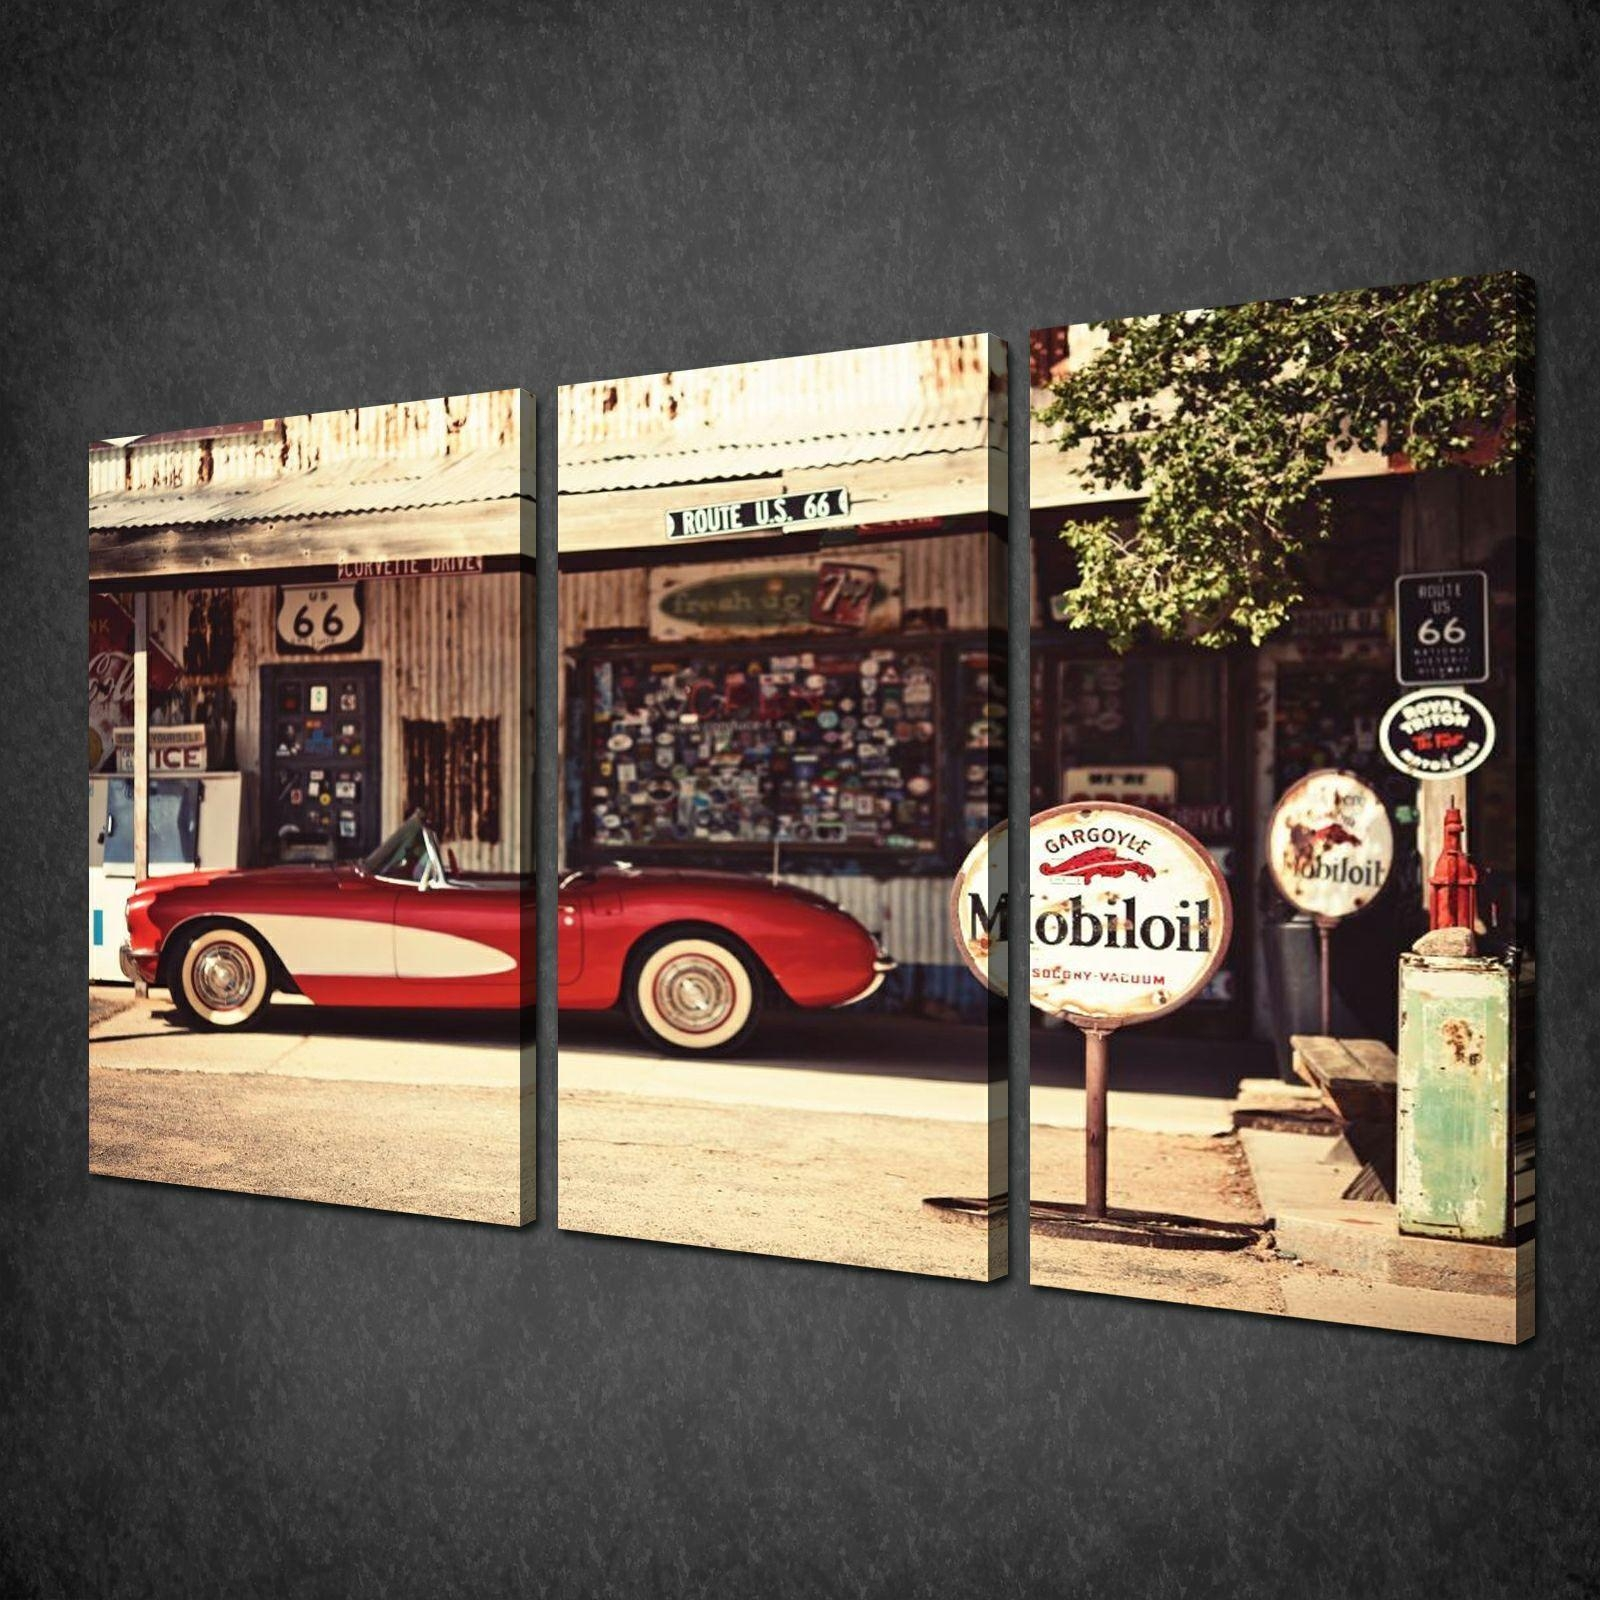 Automotive Wall Art Luxury Large Wall Art On Black And White Wall Pertaining To Large Vintage Wall Art (View 16 of 20)